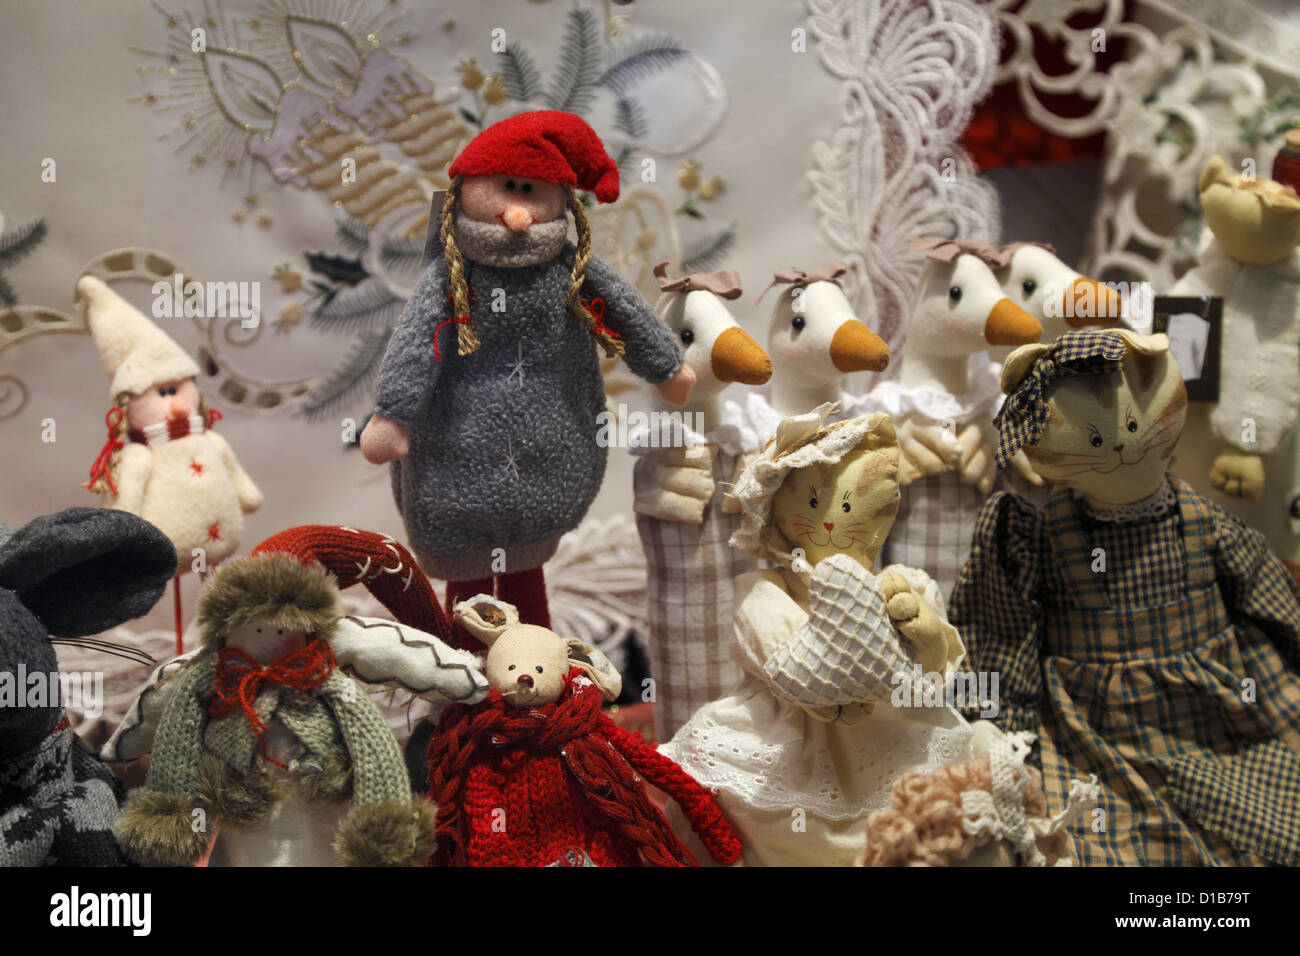 christmas decorations in window display stockfotos. Black Bedroom Furniture Sets. Home Design Ideas